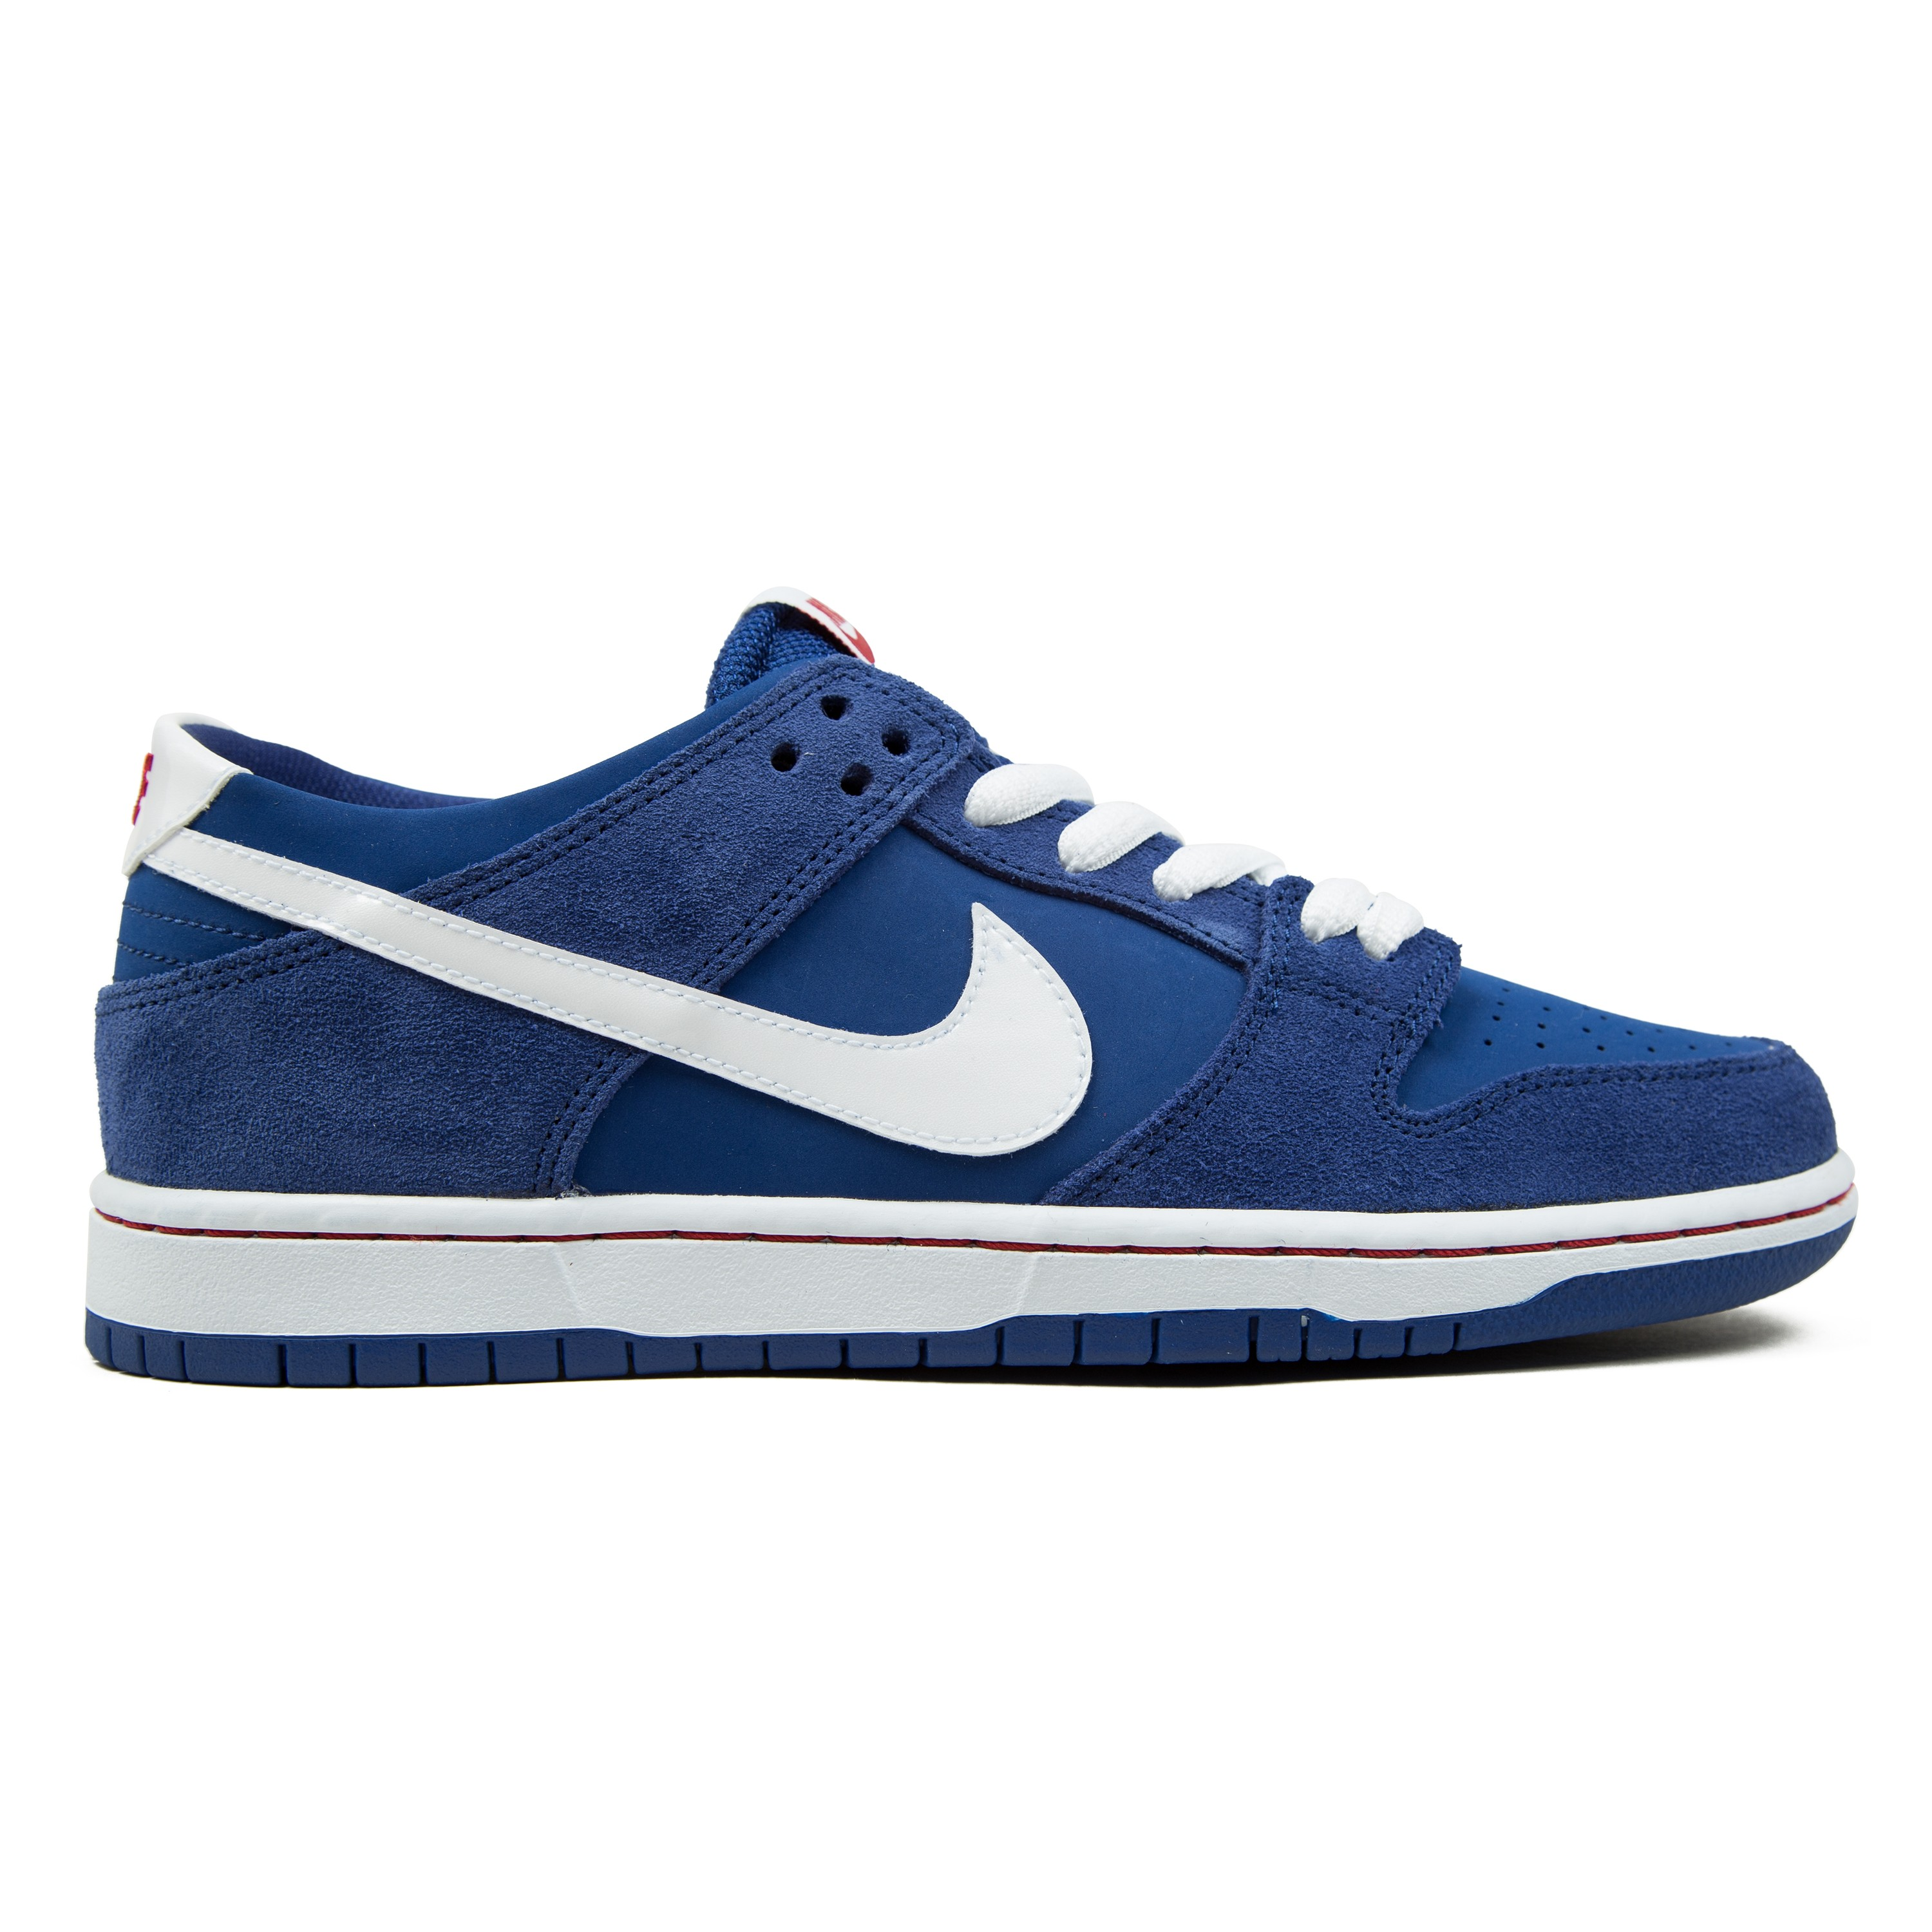 0c3cef43b15b ... Nike SB Dunk Low Premium  For full information on delivery and customs  click here . ...